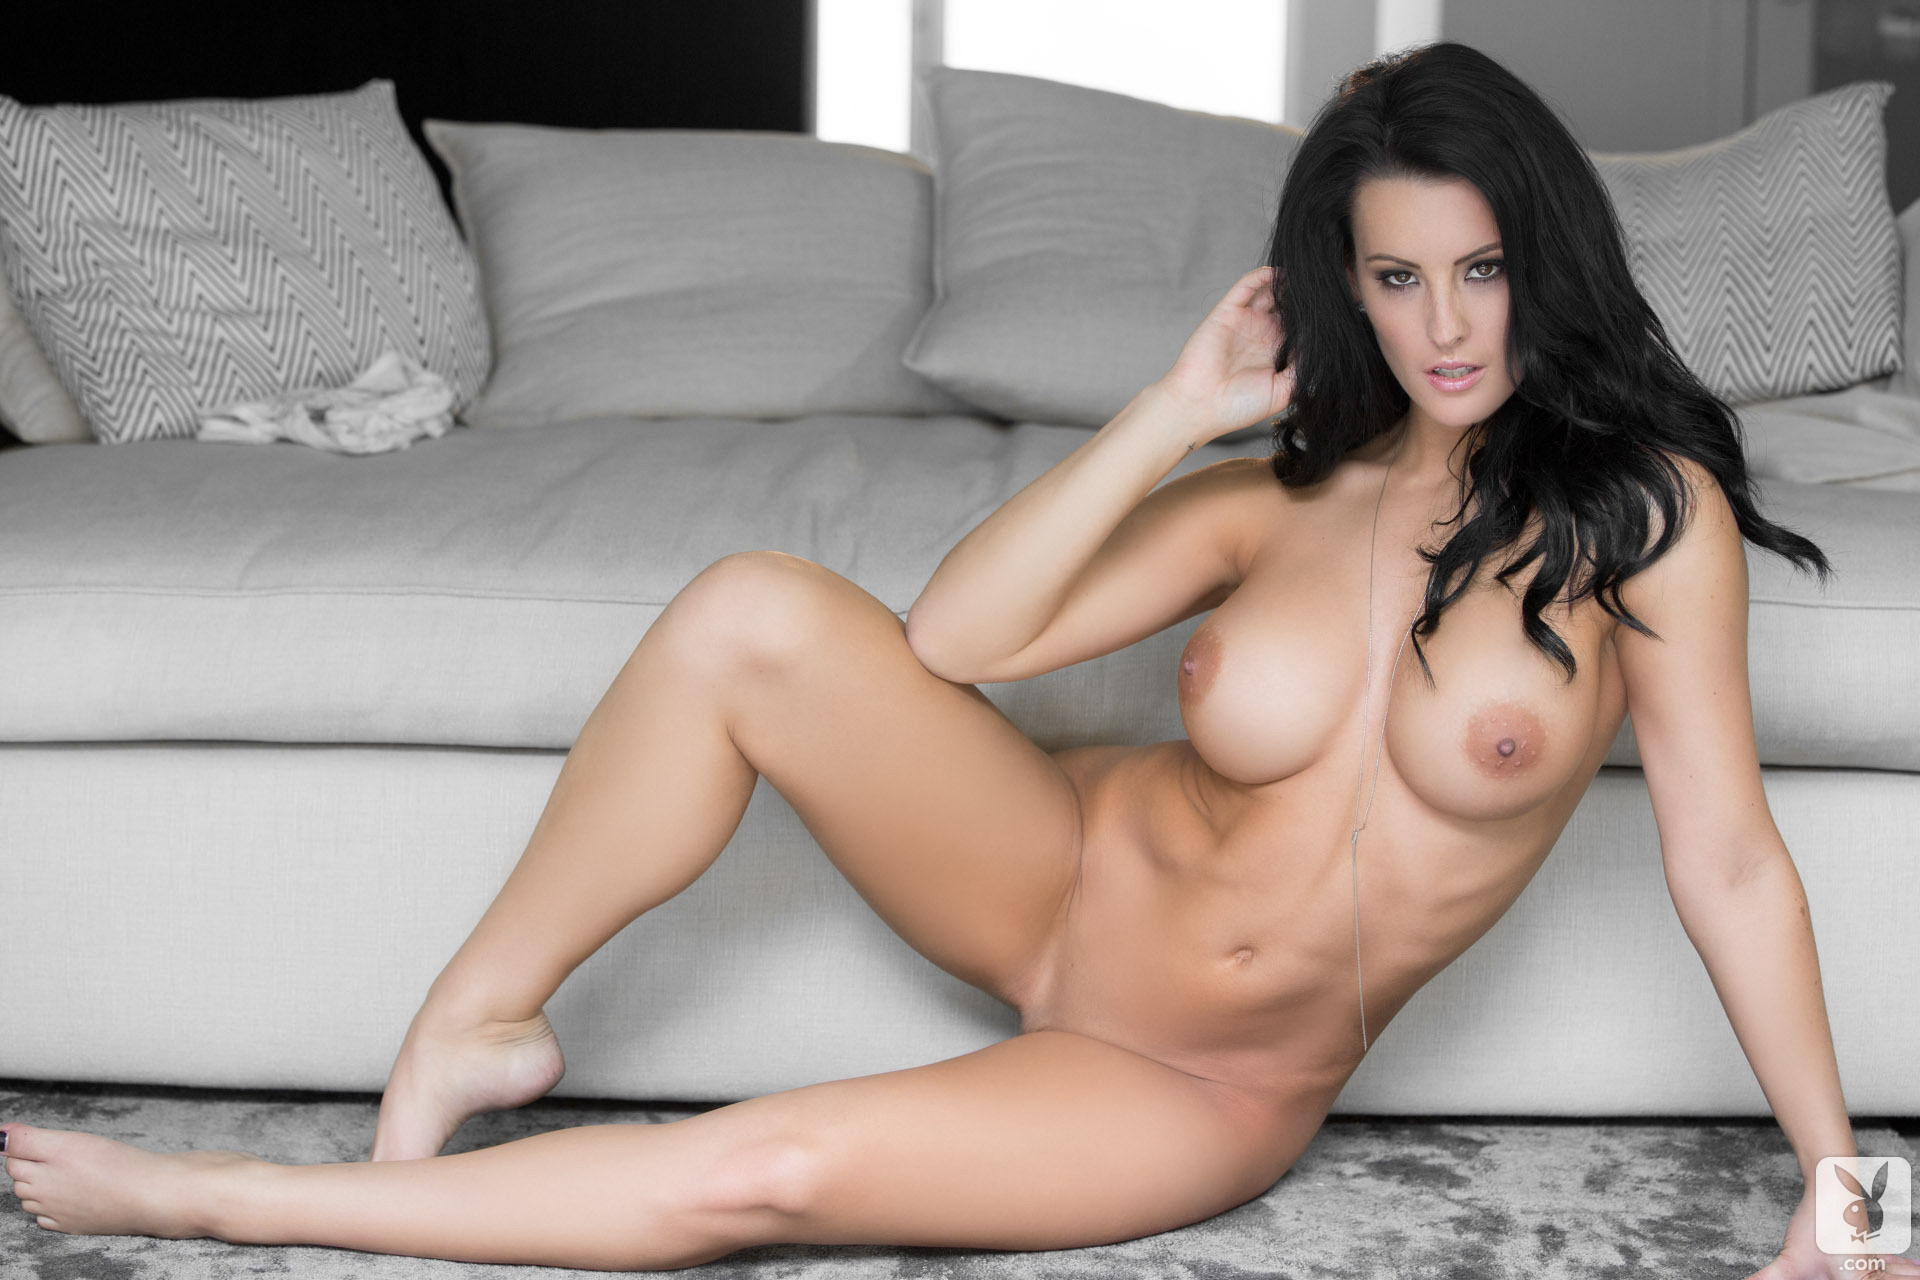 Jessie shannon nude, sexy, the fappening, uncensored